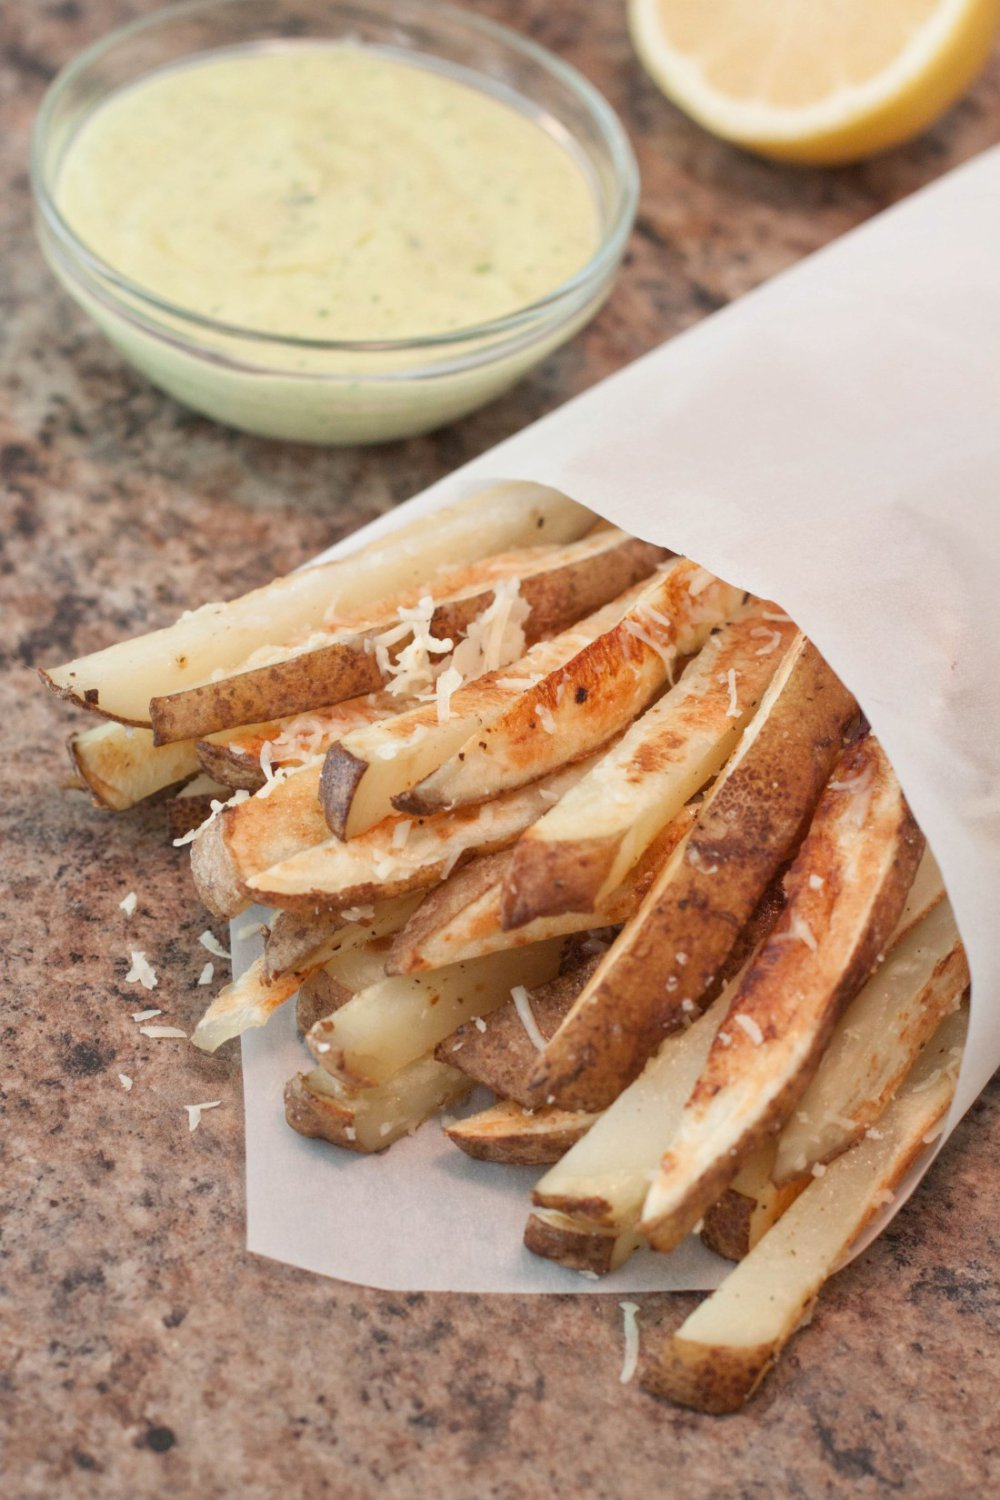 Baked Parmesan Steak Fries with Garlic Aioli Dipping Sauce